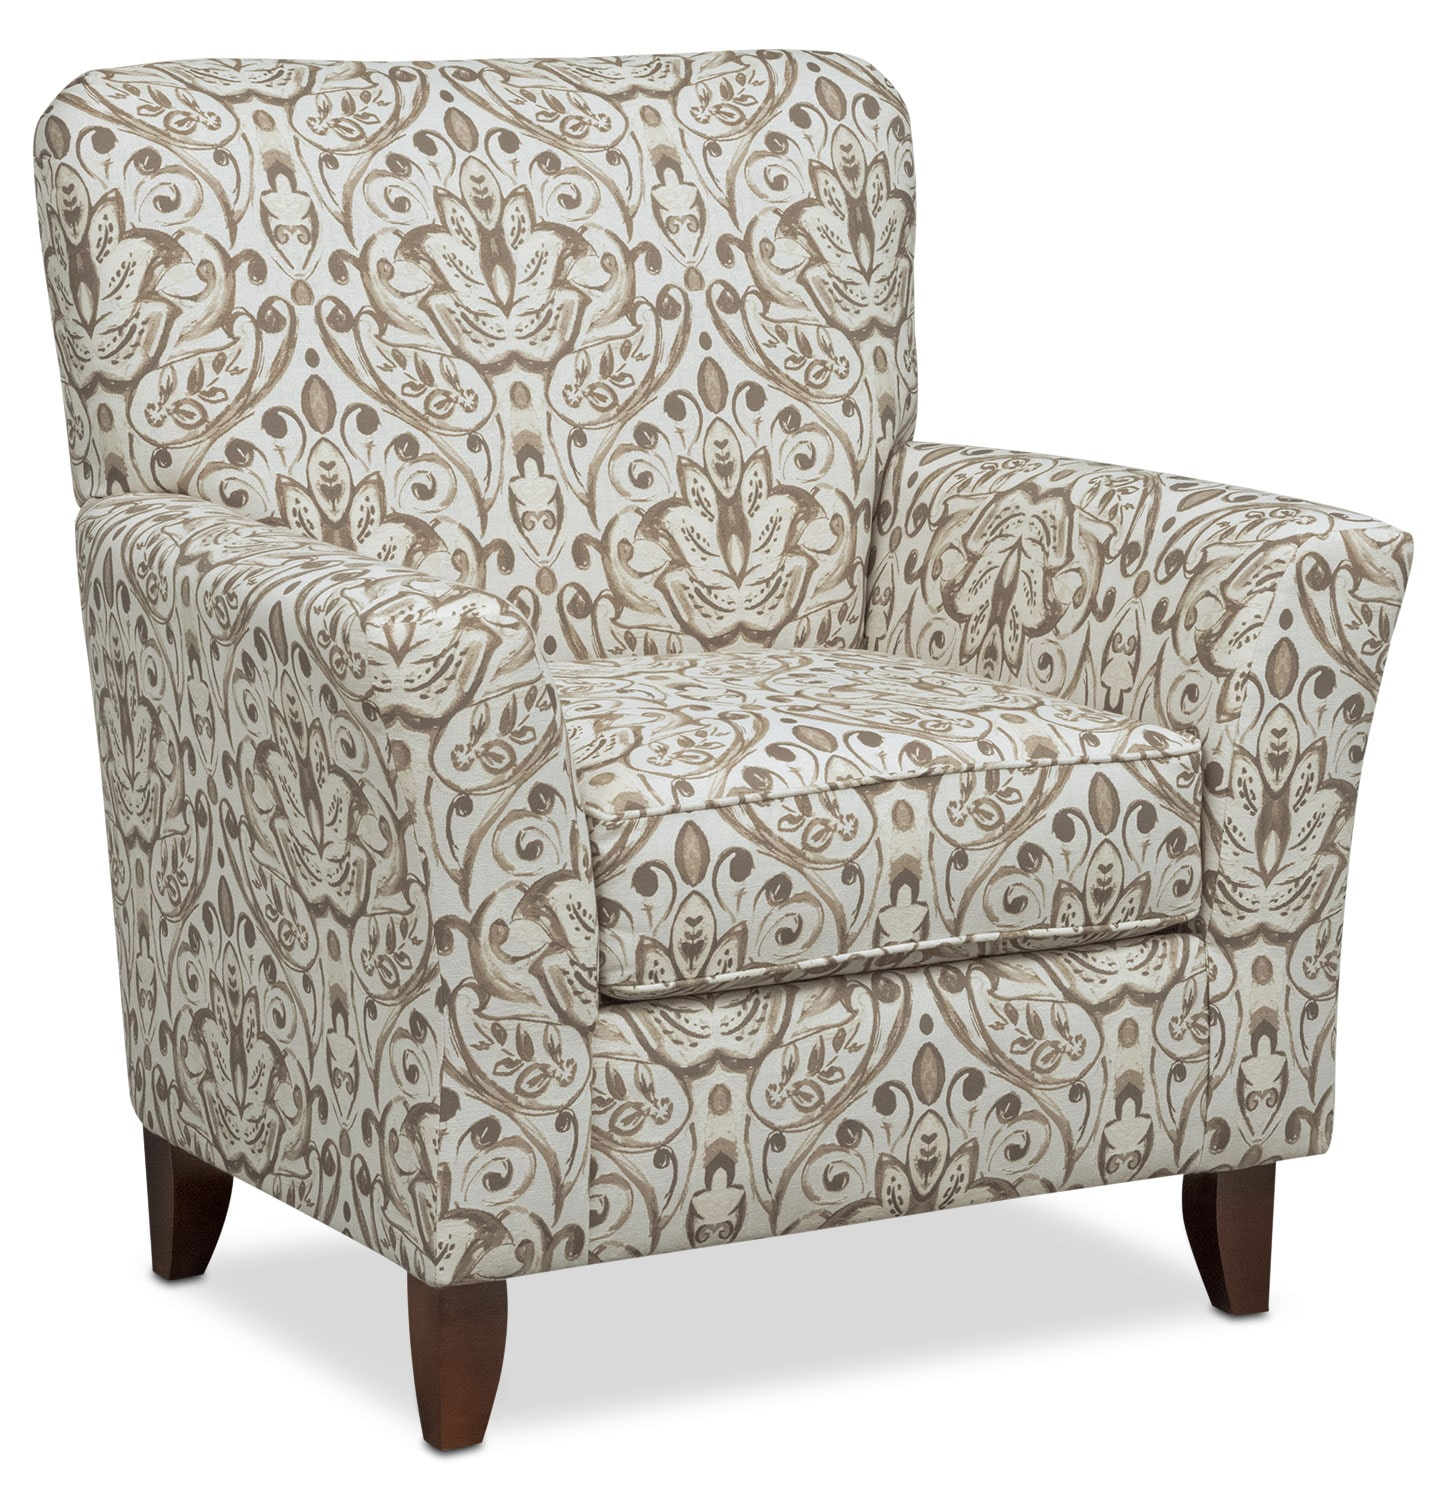 mckenna accent chair - sand | value city furniture and mattresses